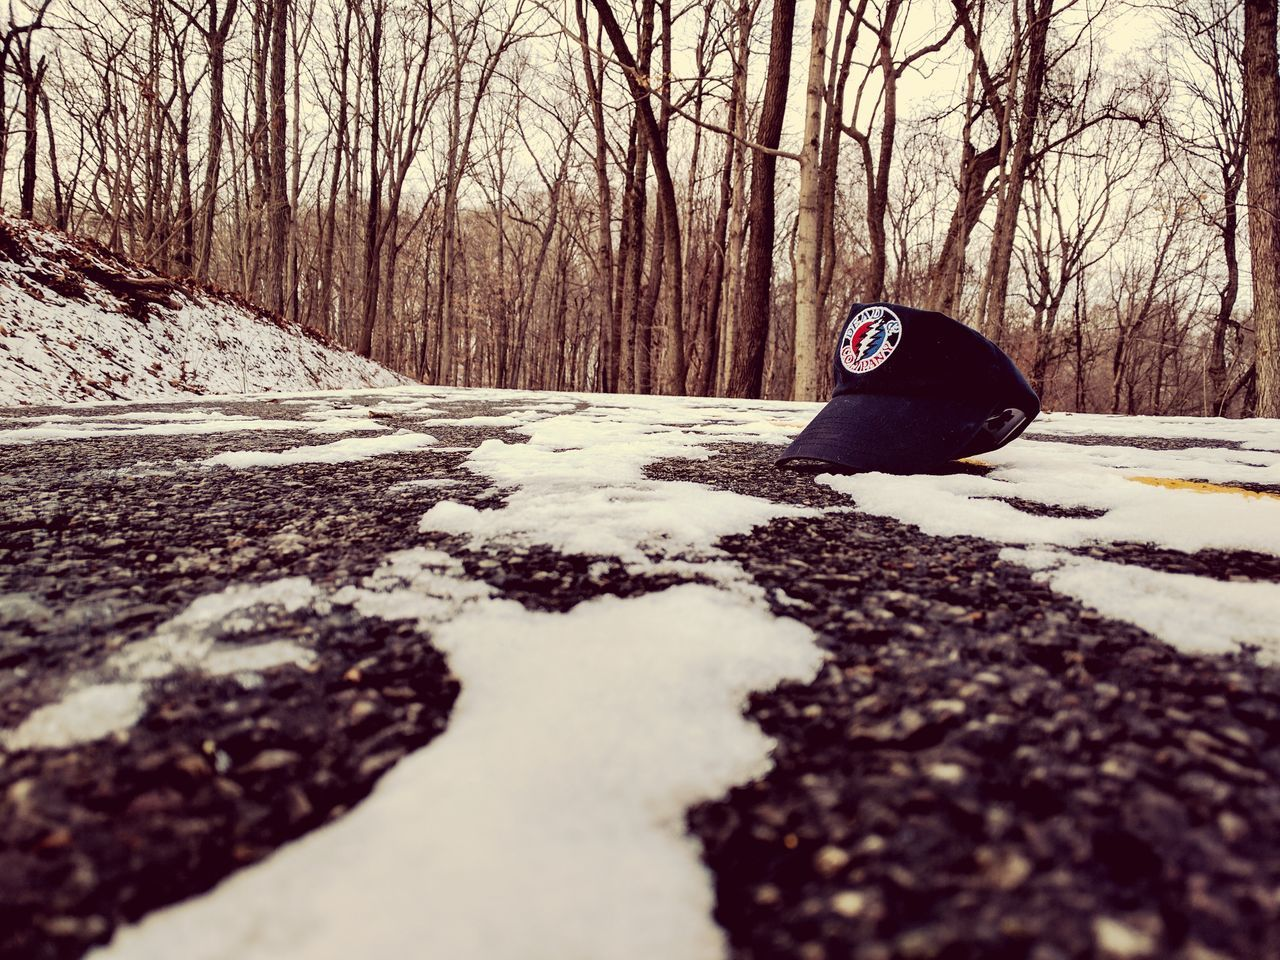 Greatful Dead Winter Snow Nature Beauty In Nature Greatful Dead Hat Road Hiking Beauty In Nature Lonely Objects